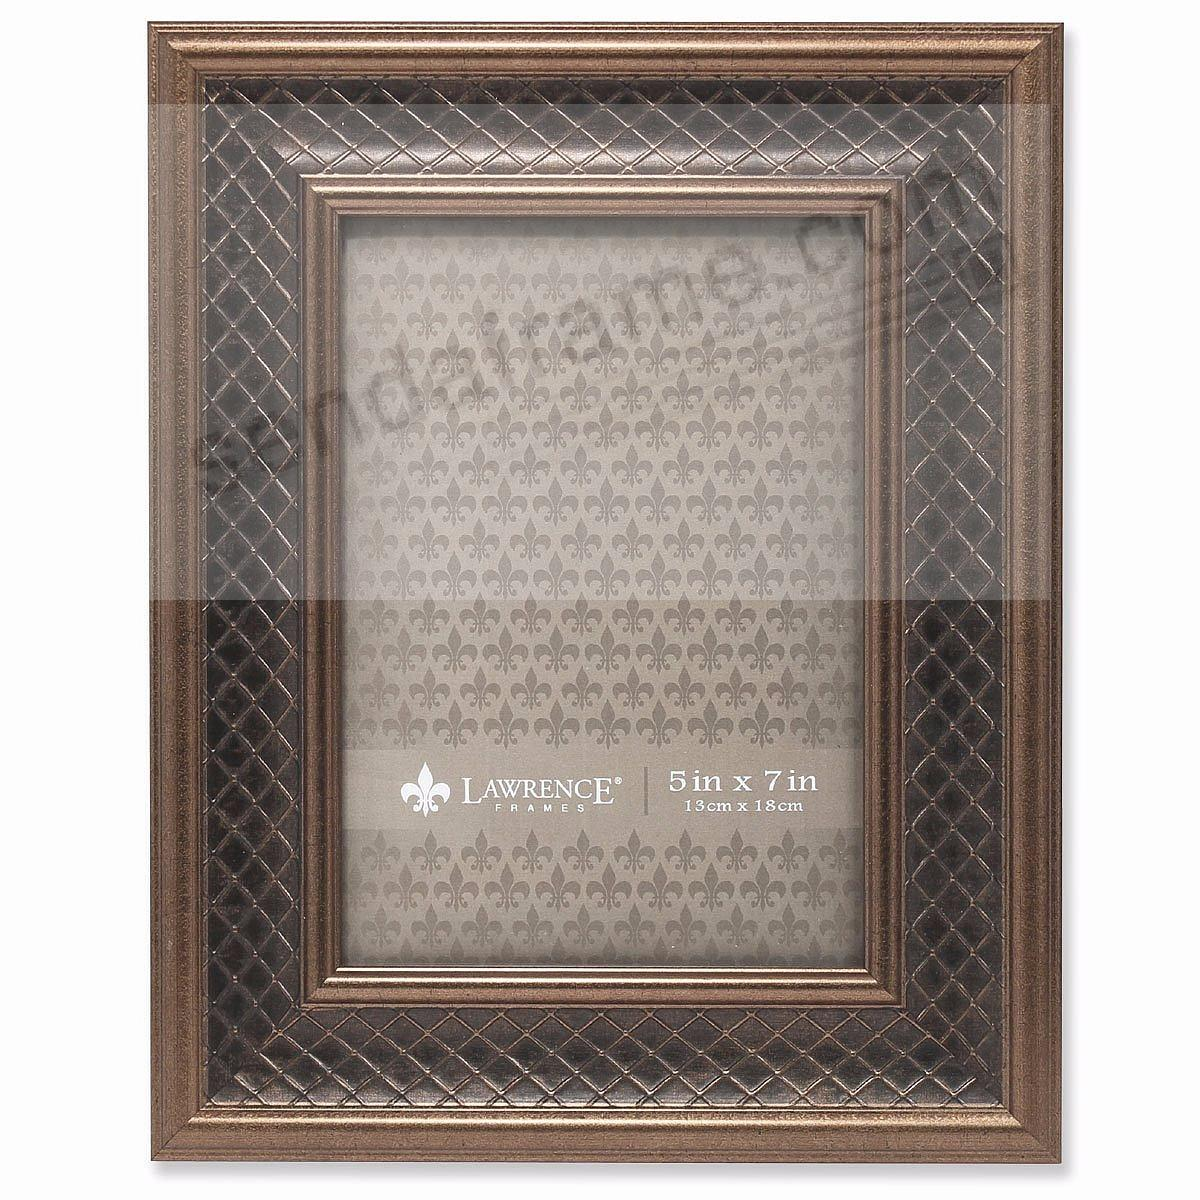 HABER BRONZE Lattice style 5x7 frame by Lawrence Frames®